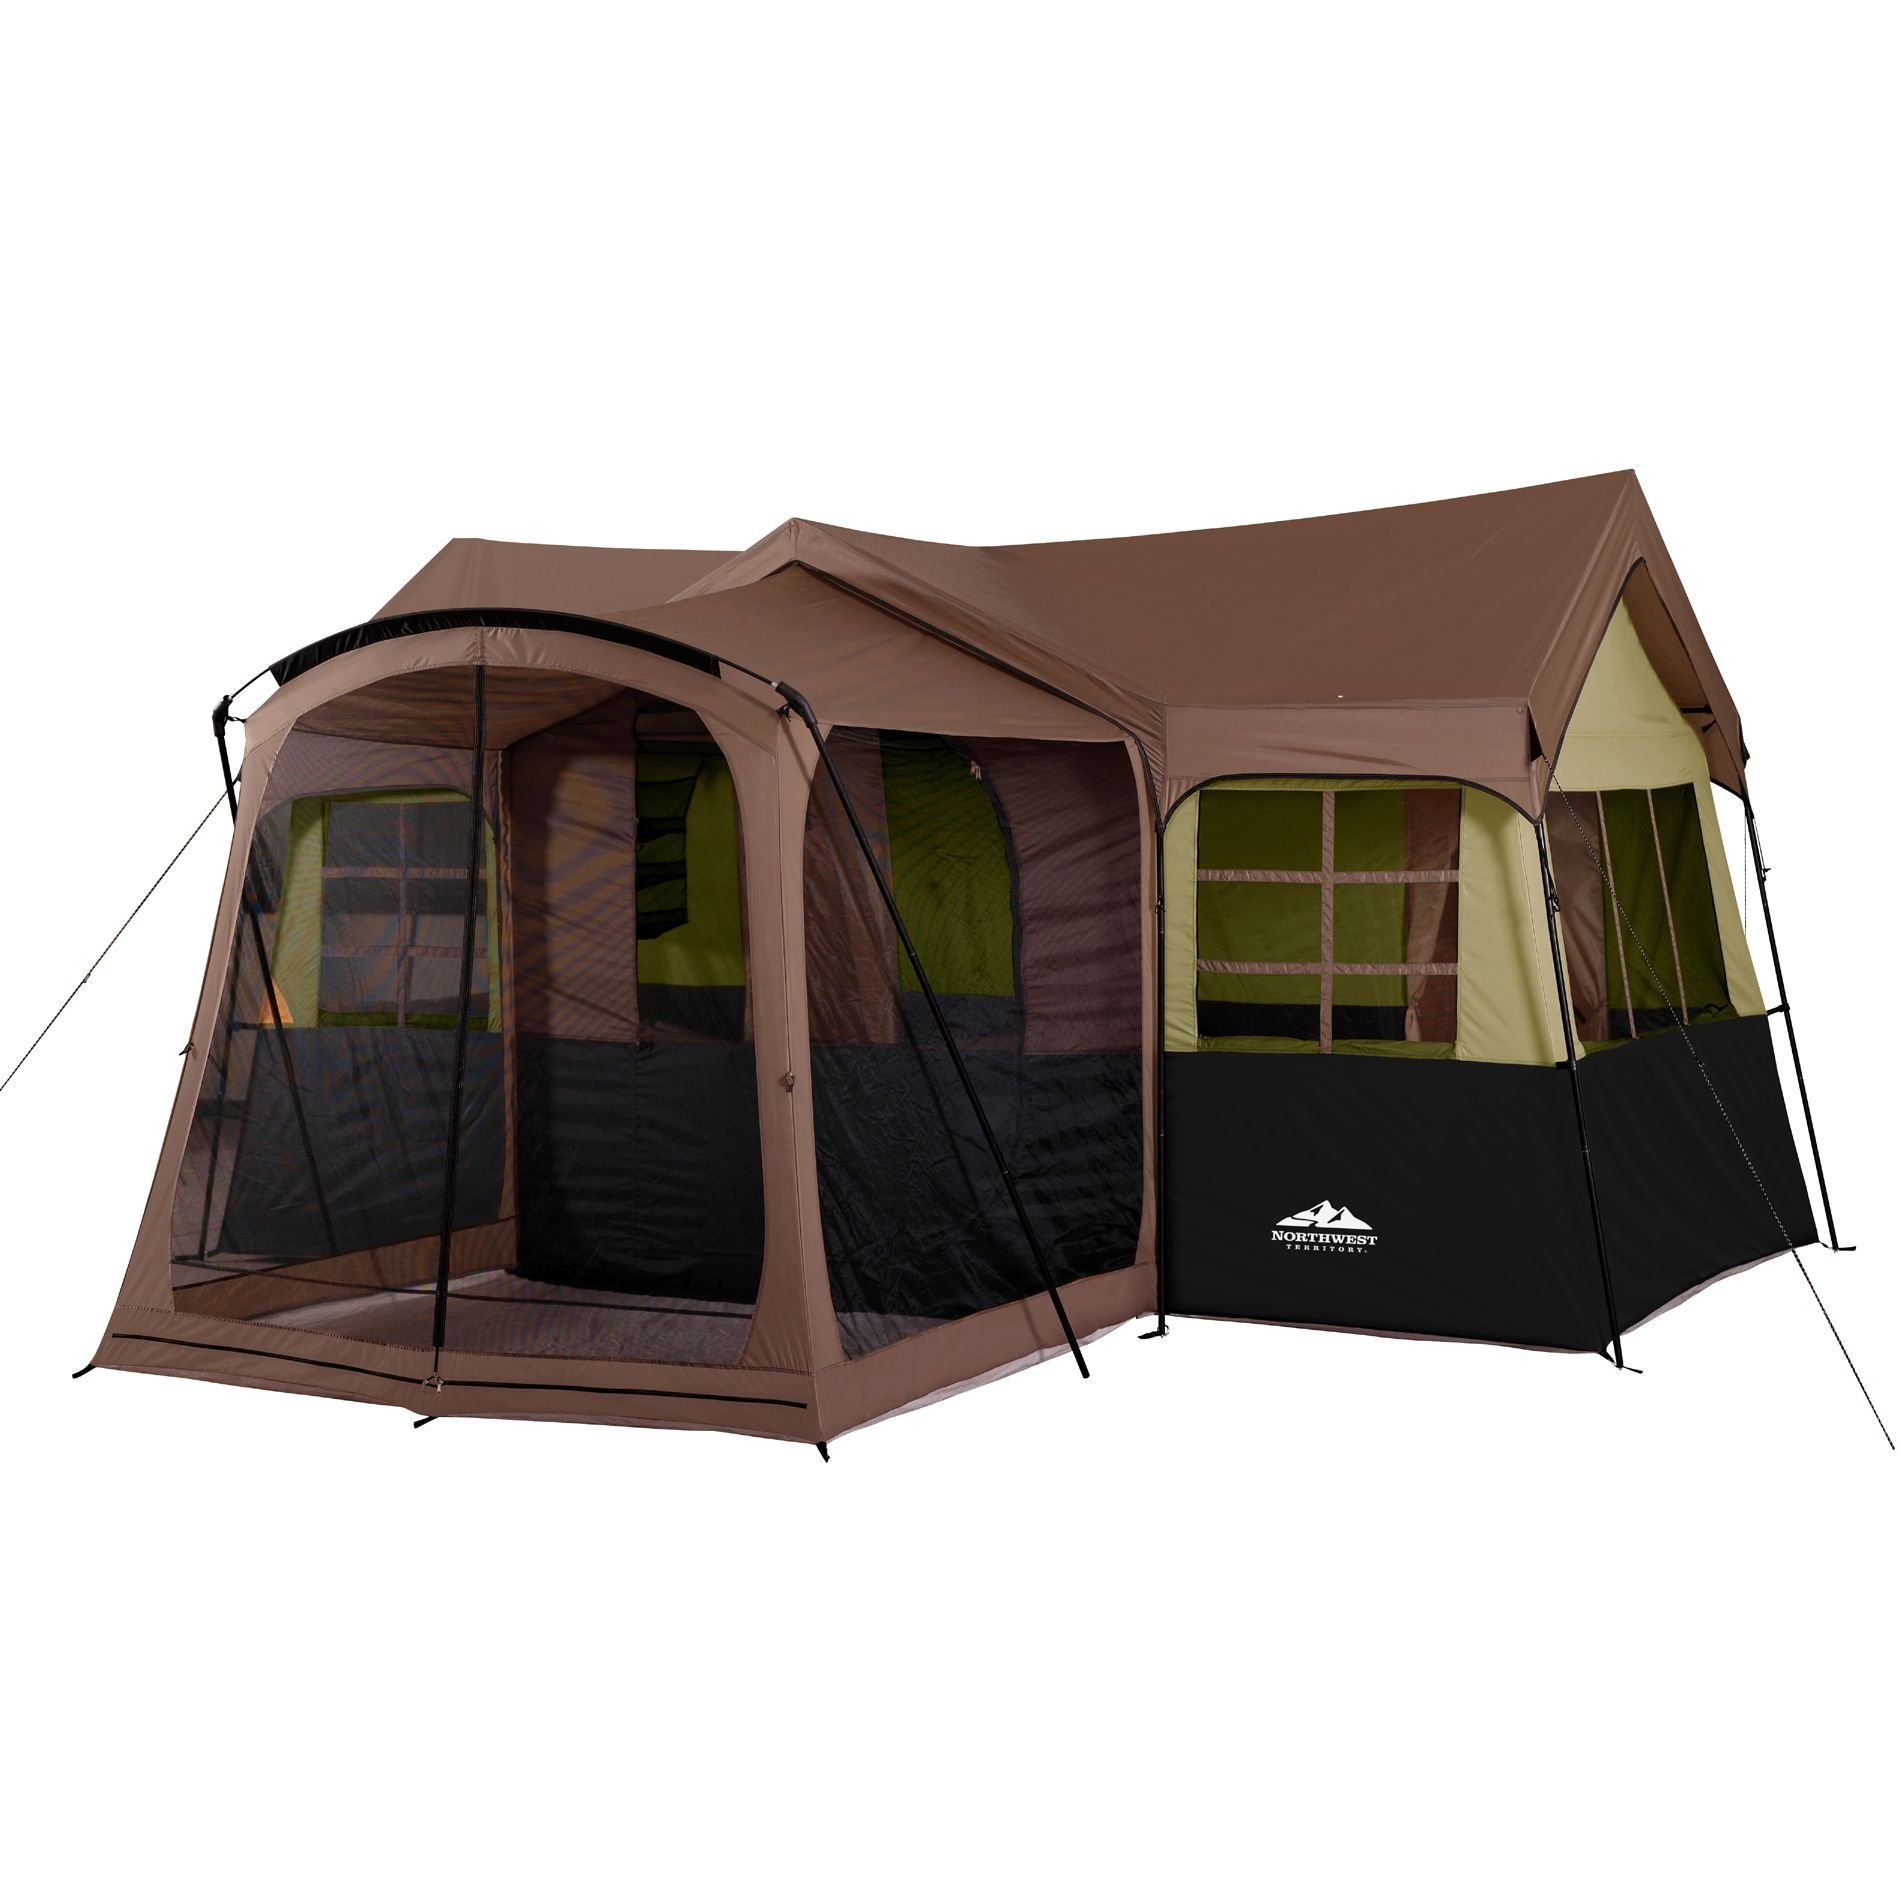 Best 4 Man Tent Tesco 4 Man Pop Up Tent Family Tents For Uk With Pictures